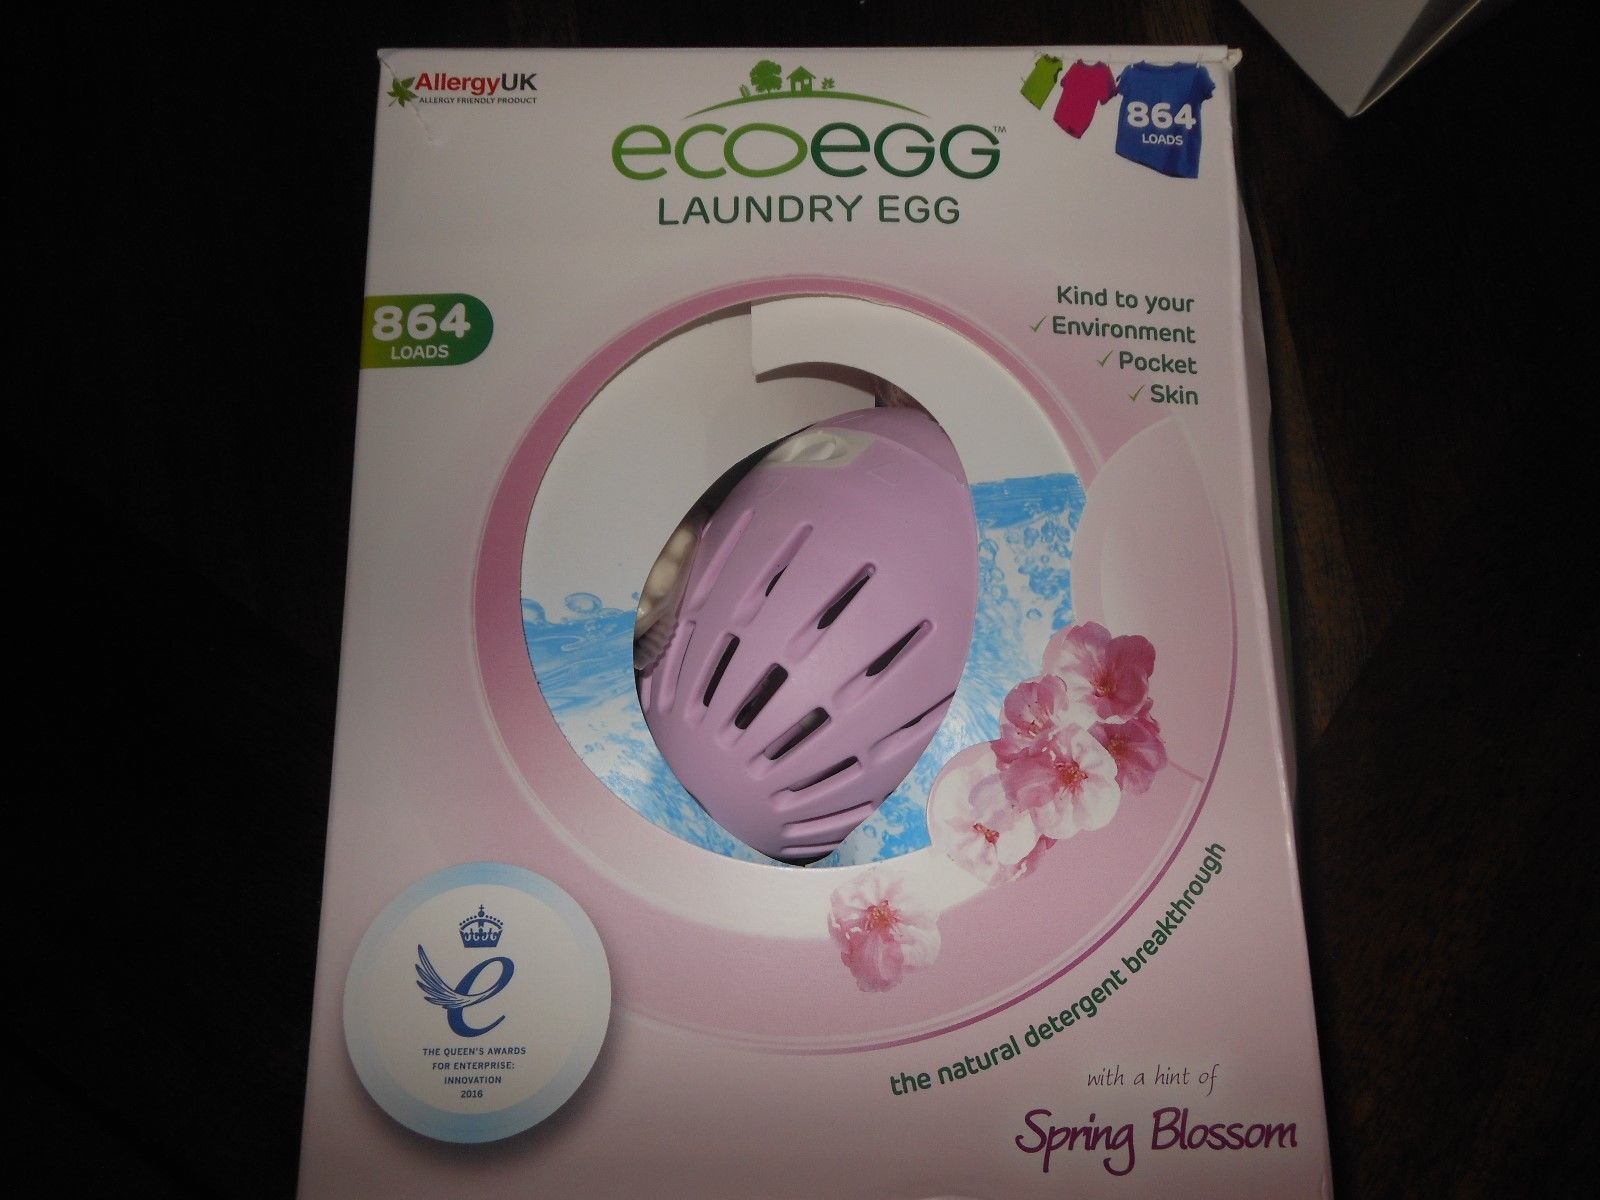 Detergents 78691 Ecoegg Laundry Egg Eco Friendly 1008 Loads